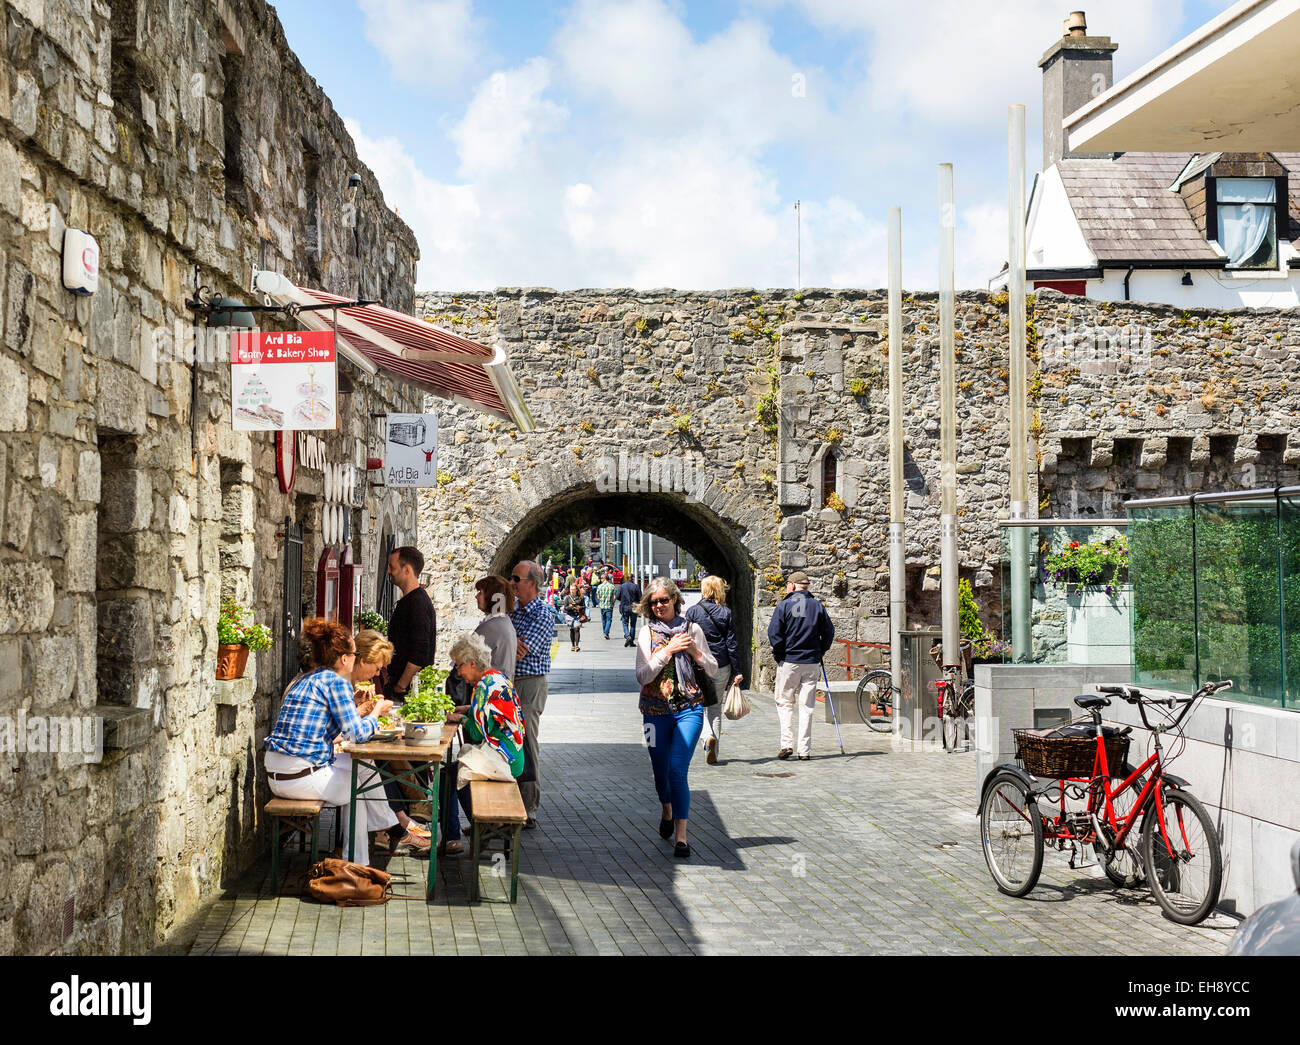 Spanish Arches, Galway City, Ireland - Stock Image